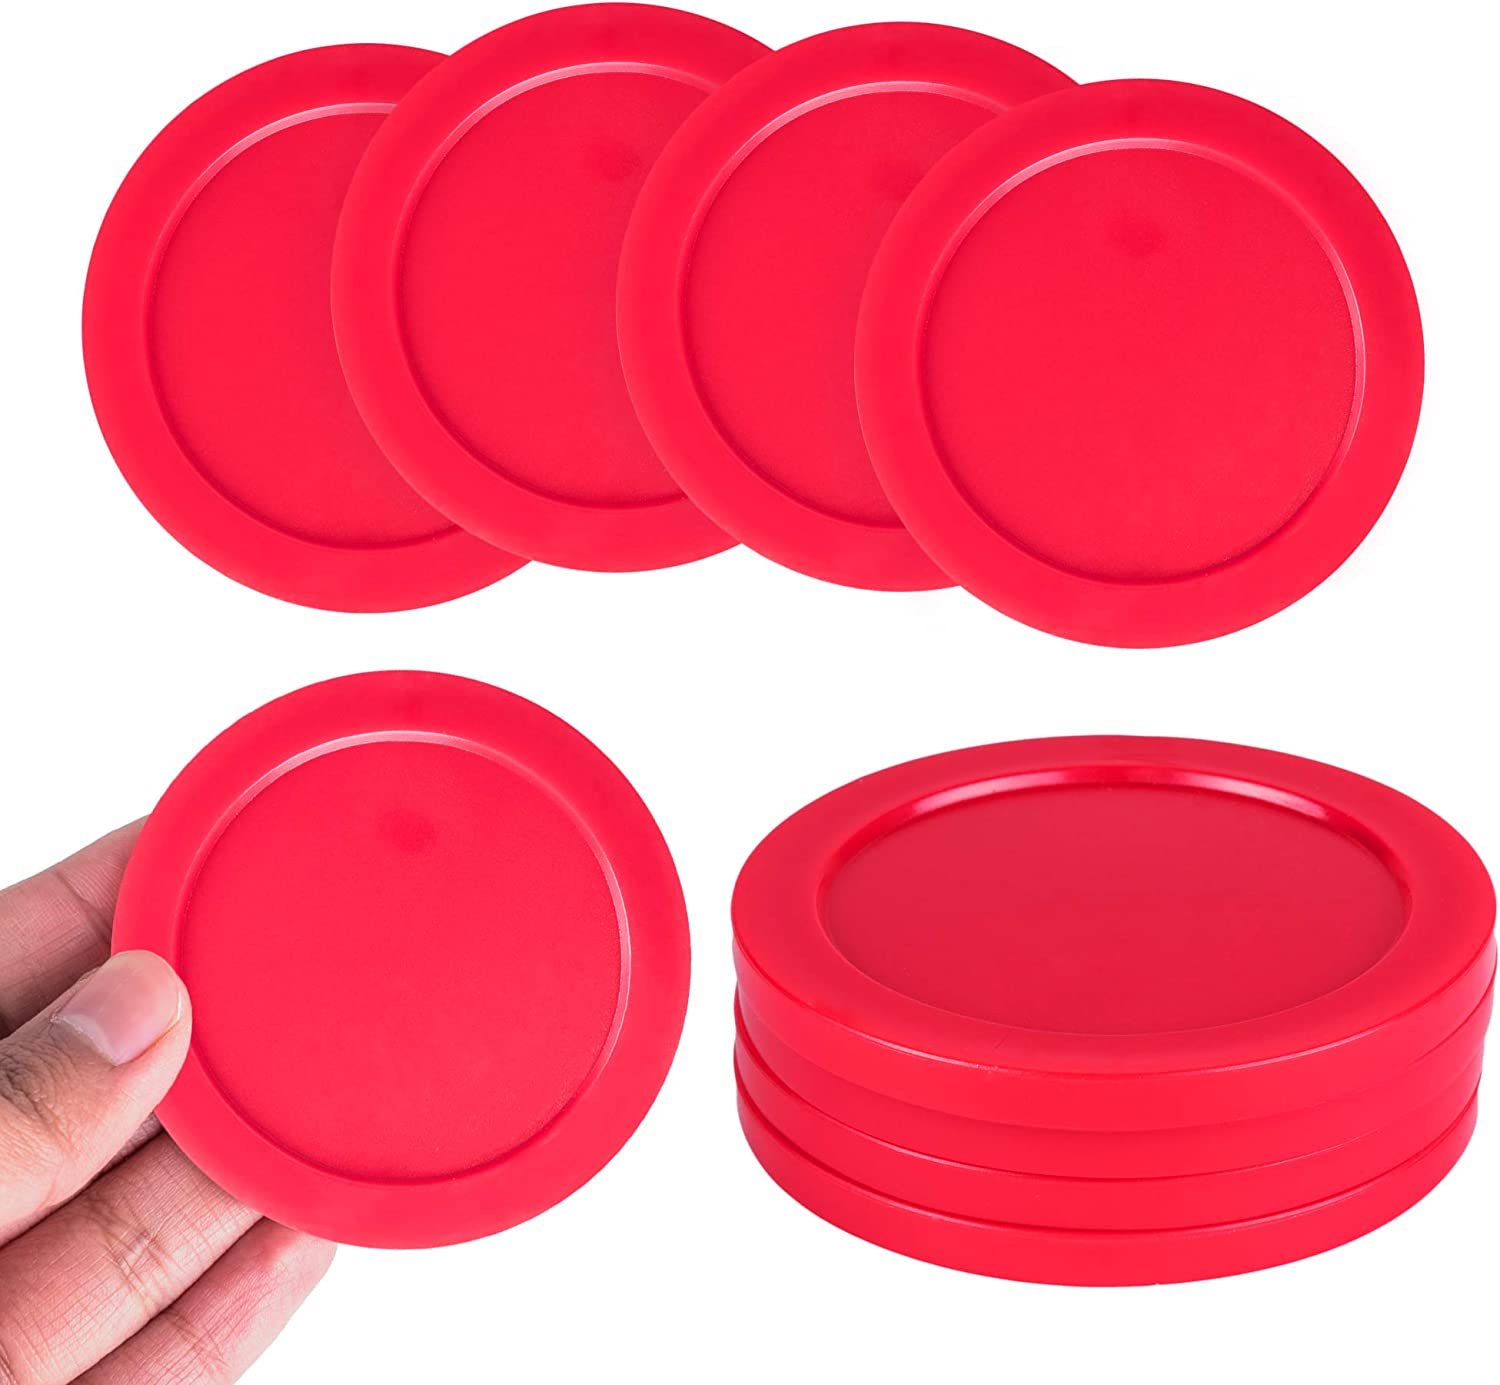 2 Strikers, 4 Pucks POLARHAWK Light Weight Air Hockey Pushers Red Replacement Pucks Red Air Hockey Pucks Great Goal Handles Paddles Replacement Accessories for Game Tables